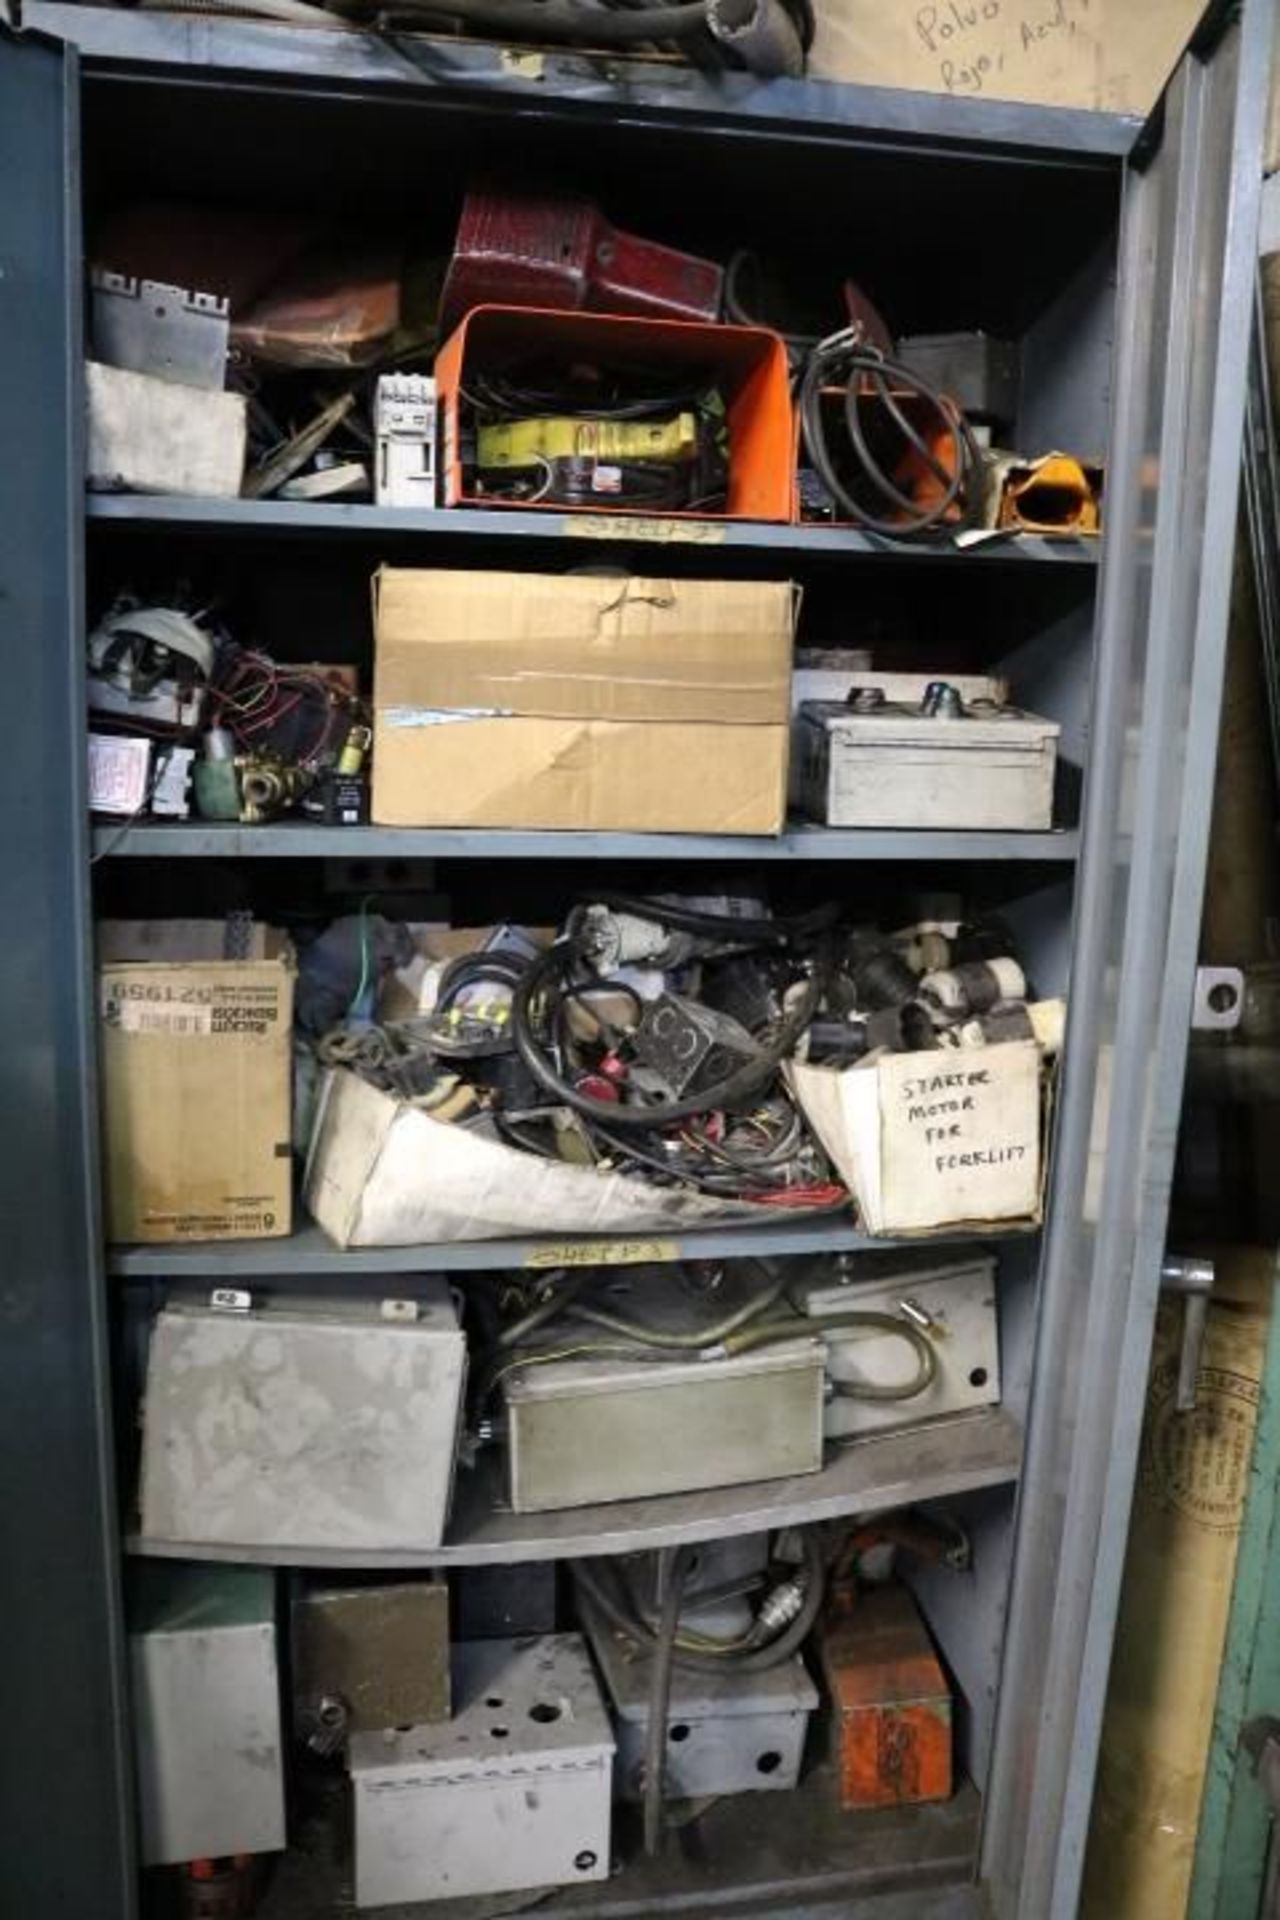 Lot 33 - CABINET W/ CONTENTS TO INCLUDE: HOSES, ELECTRICAL ADAPTERS, ETC.